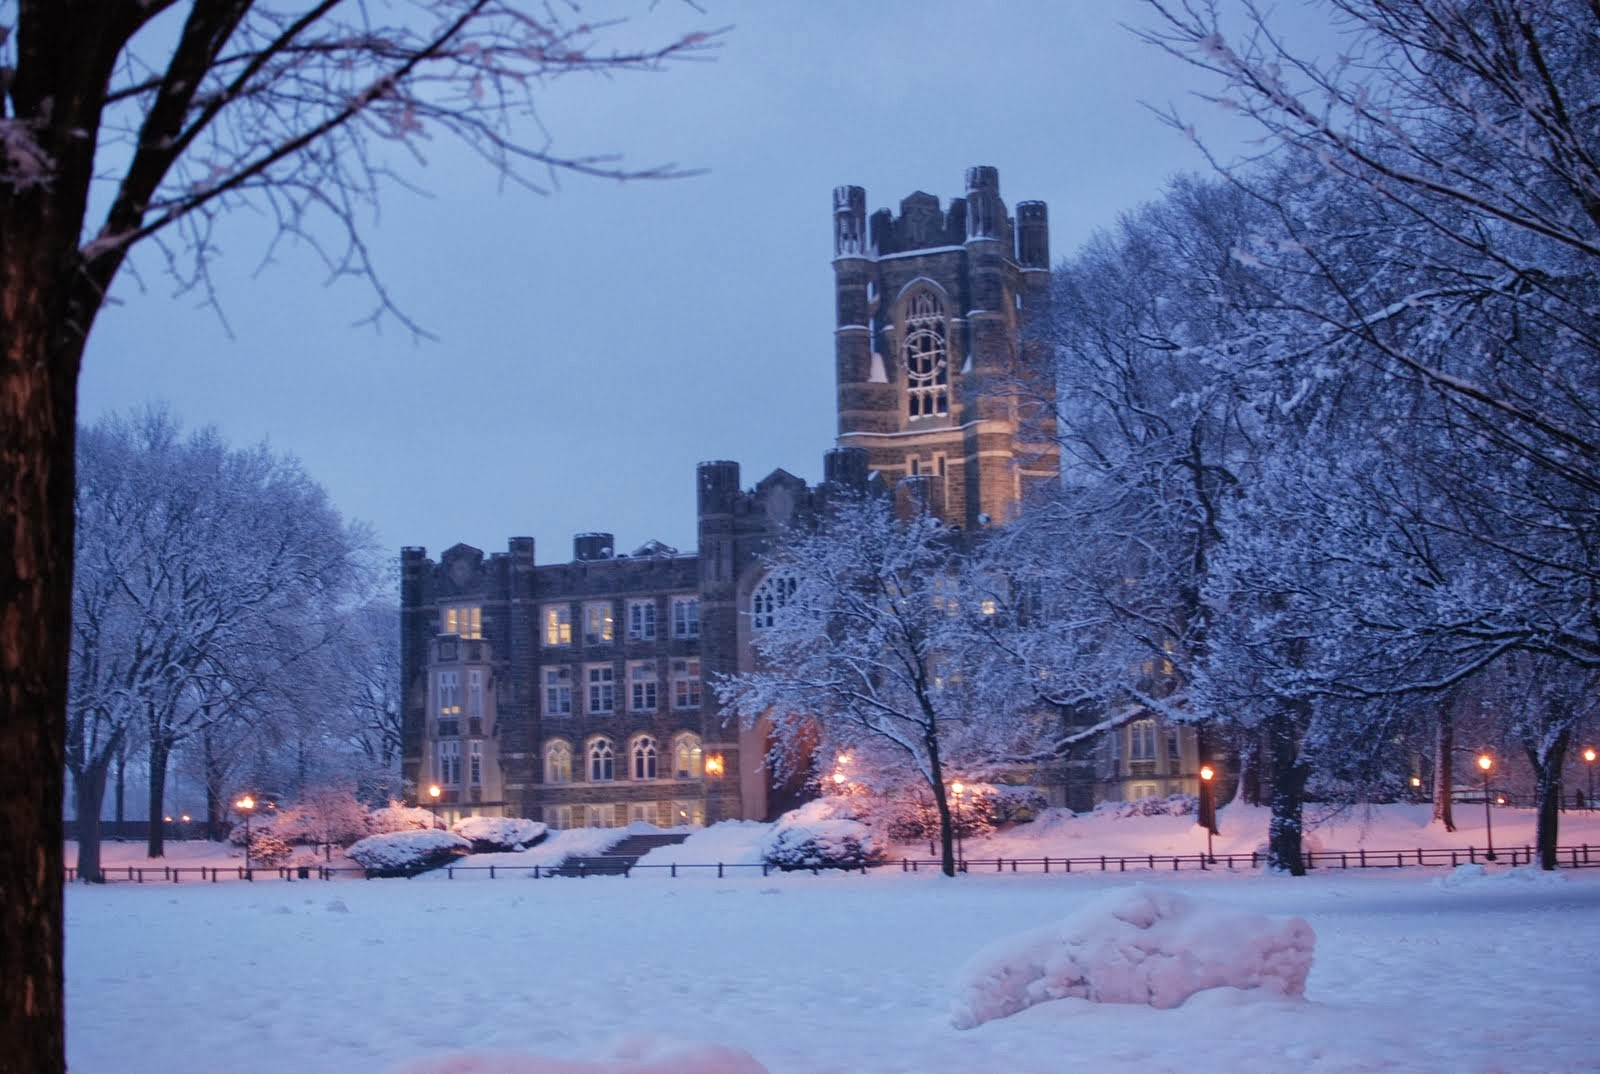 Midterms, However, Don't Have That Silver Lining Yes, Keating Always Looks  Stunning During The Snowfall And My Friends And I Had An Amazing Snowball  Fight